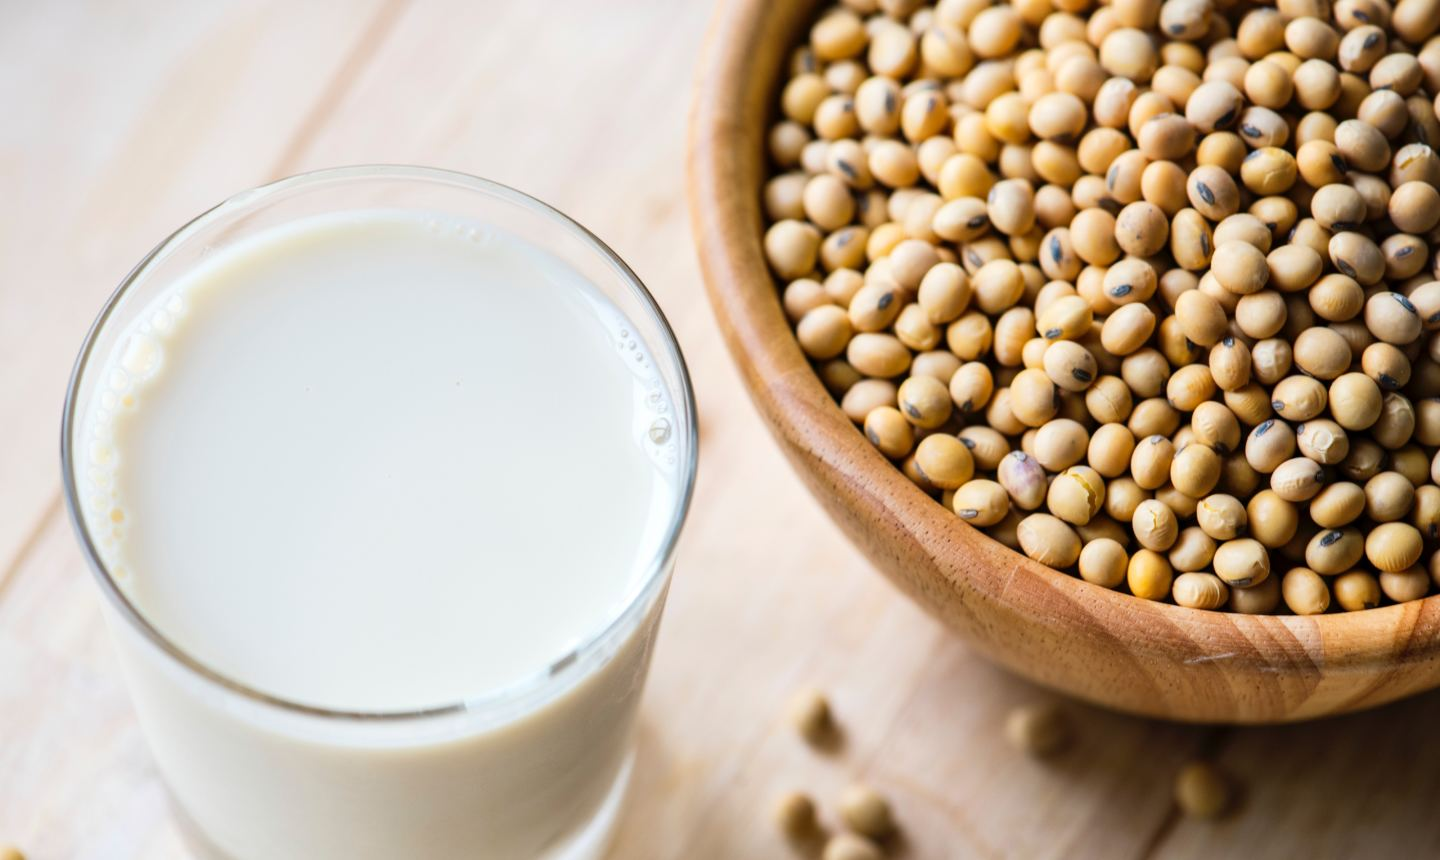 Soy milk and beans image